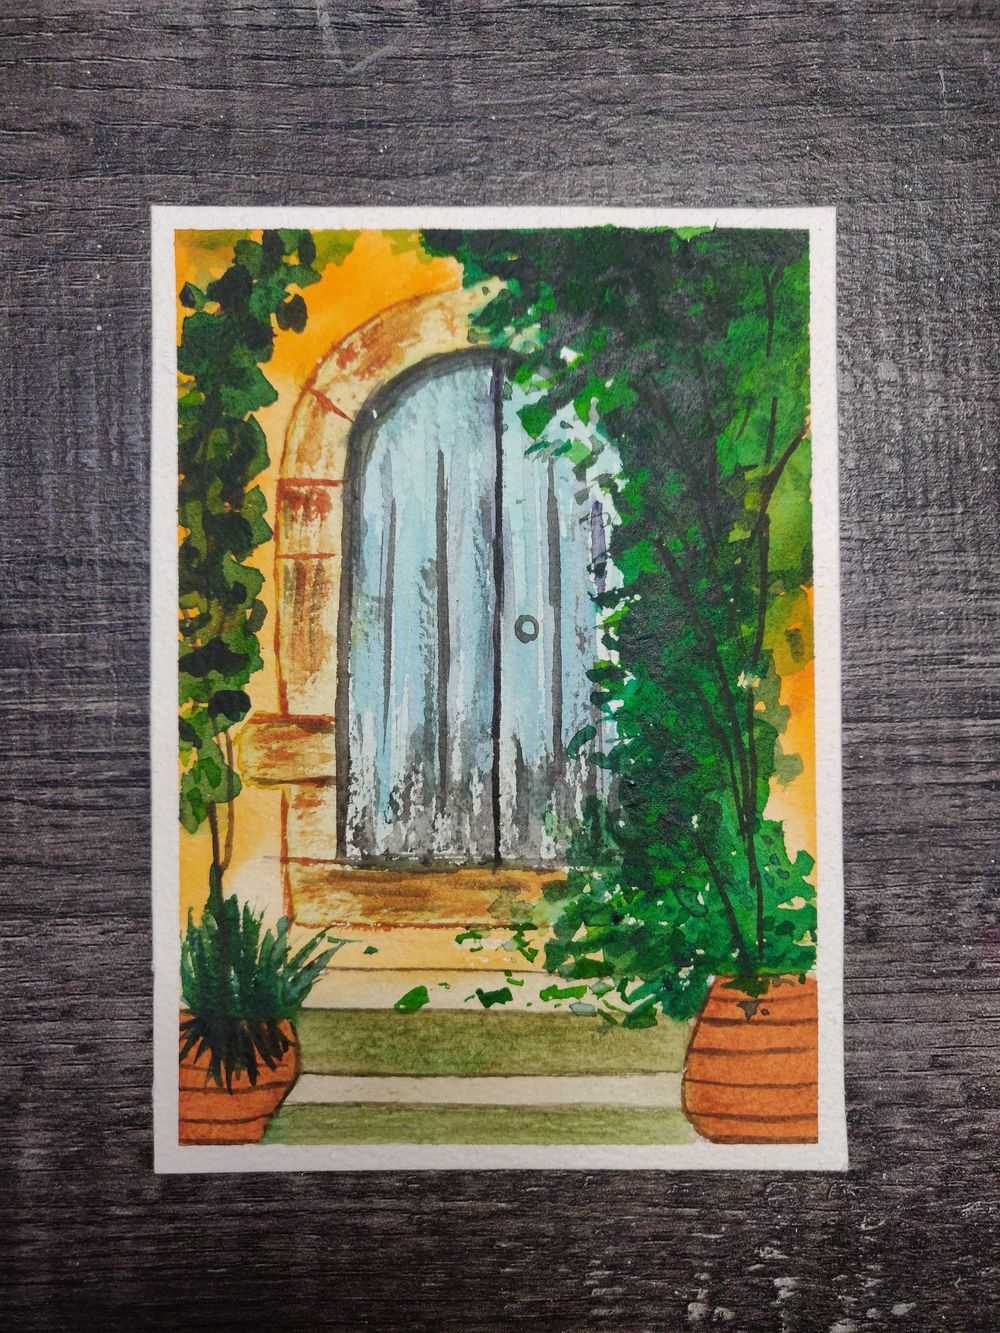 Old Rustic Doors - image 2 - student project